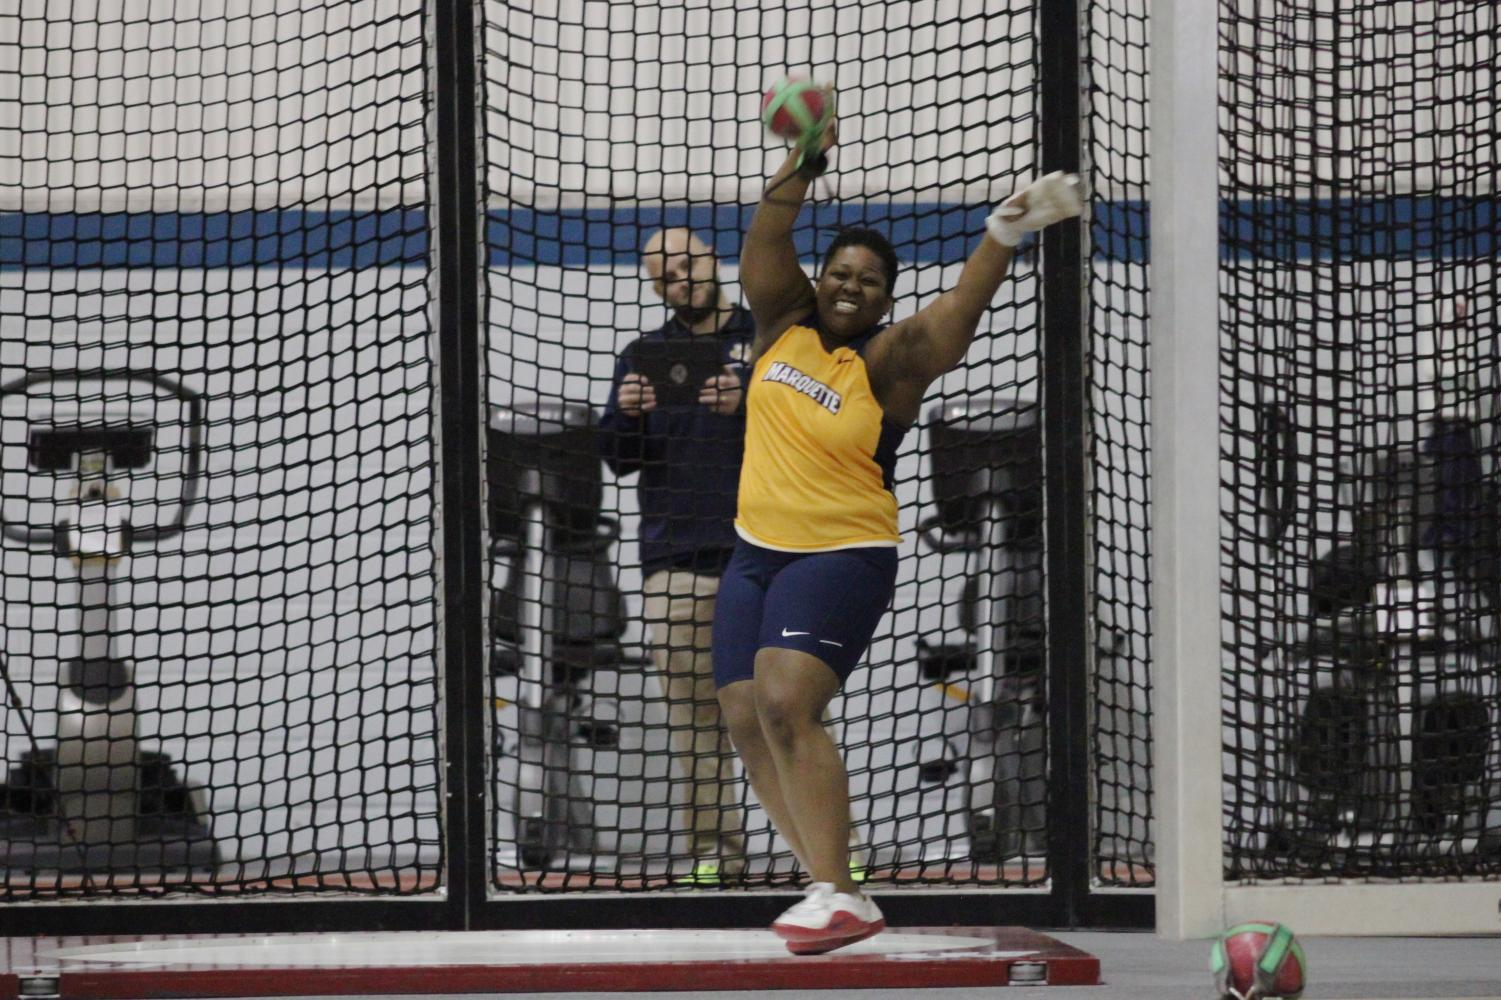 Senior thrower Maya Marion is going for her fourth BIG EAST outdoor shot put title. (Photo by Maggie Bean via Marquette Athletics.)